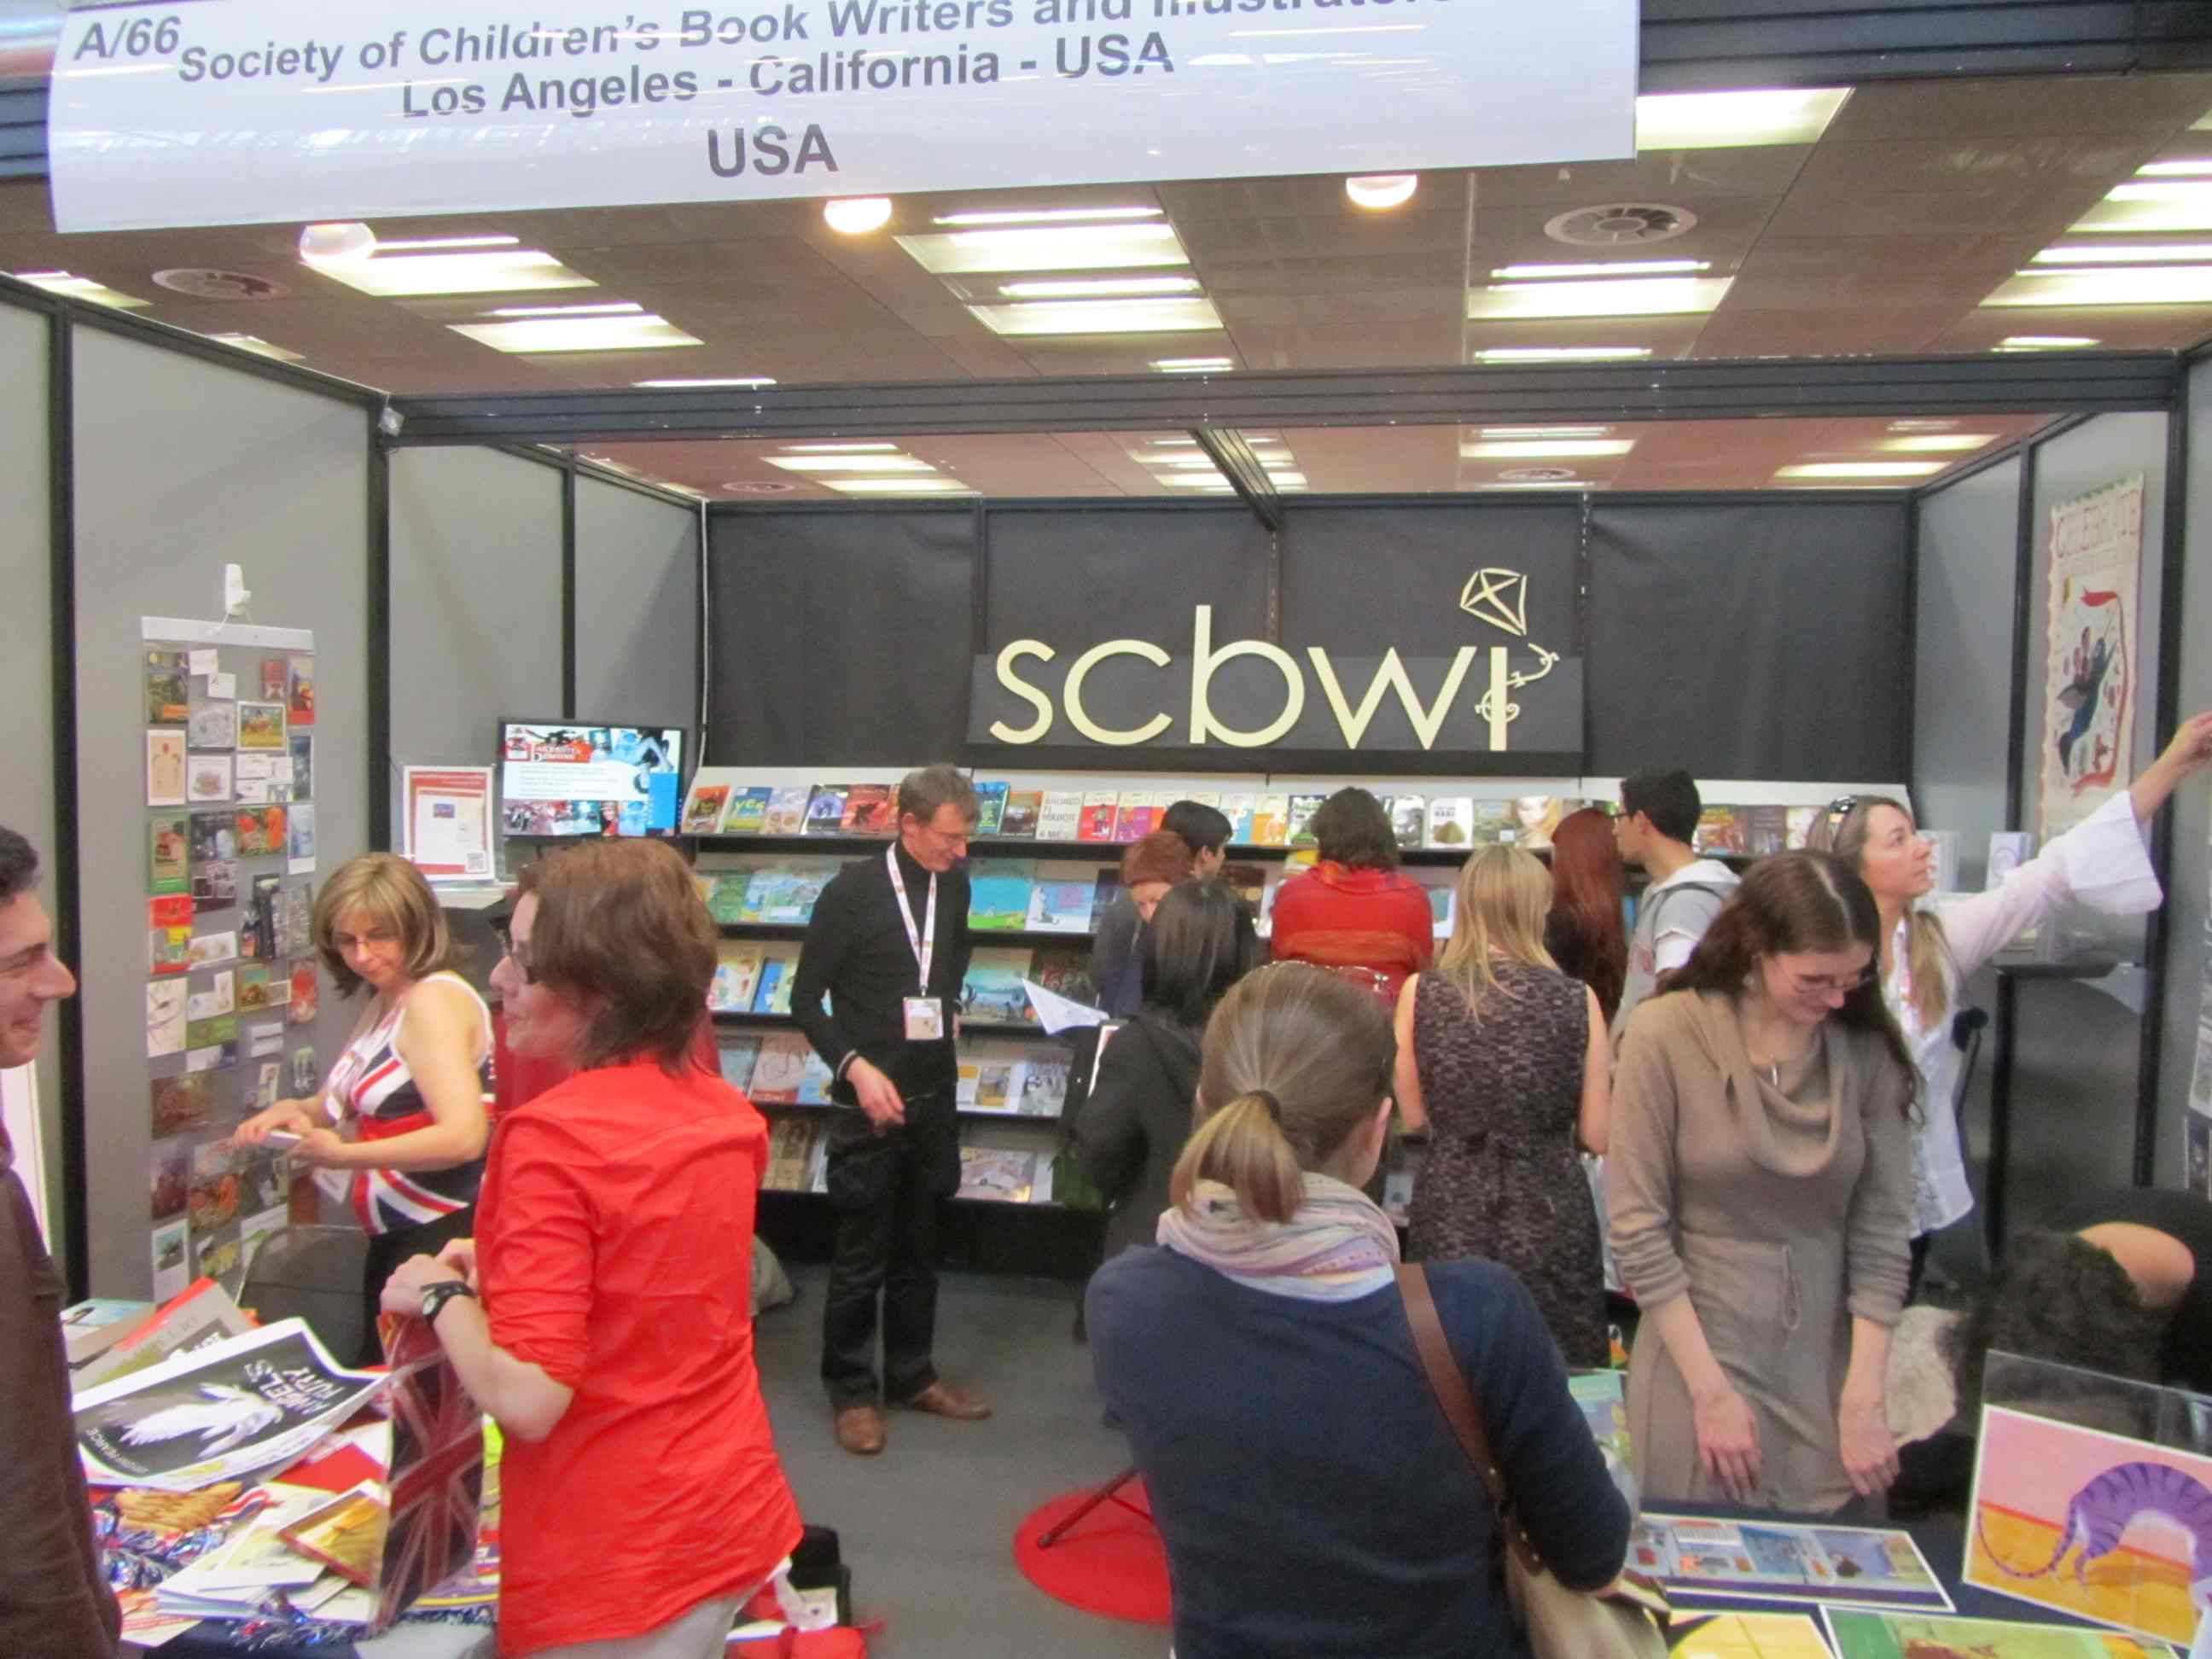 the SCBWI Booth in action ... books, showcases, and a whole lot more.